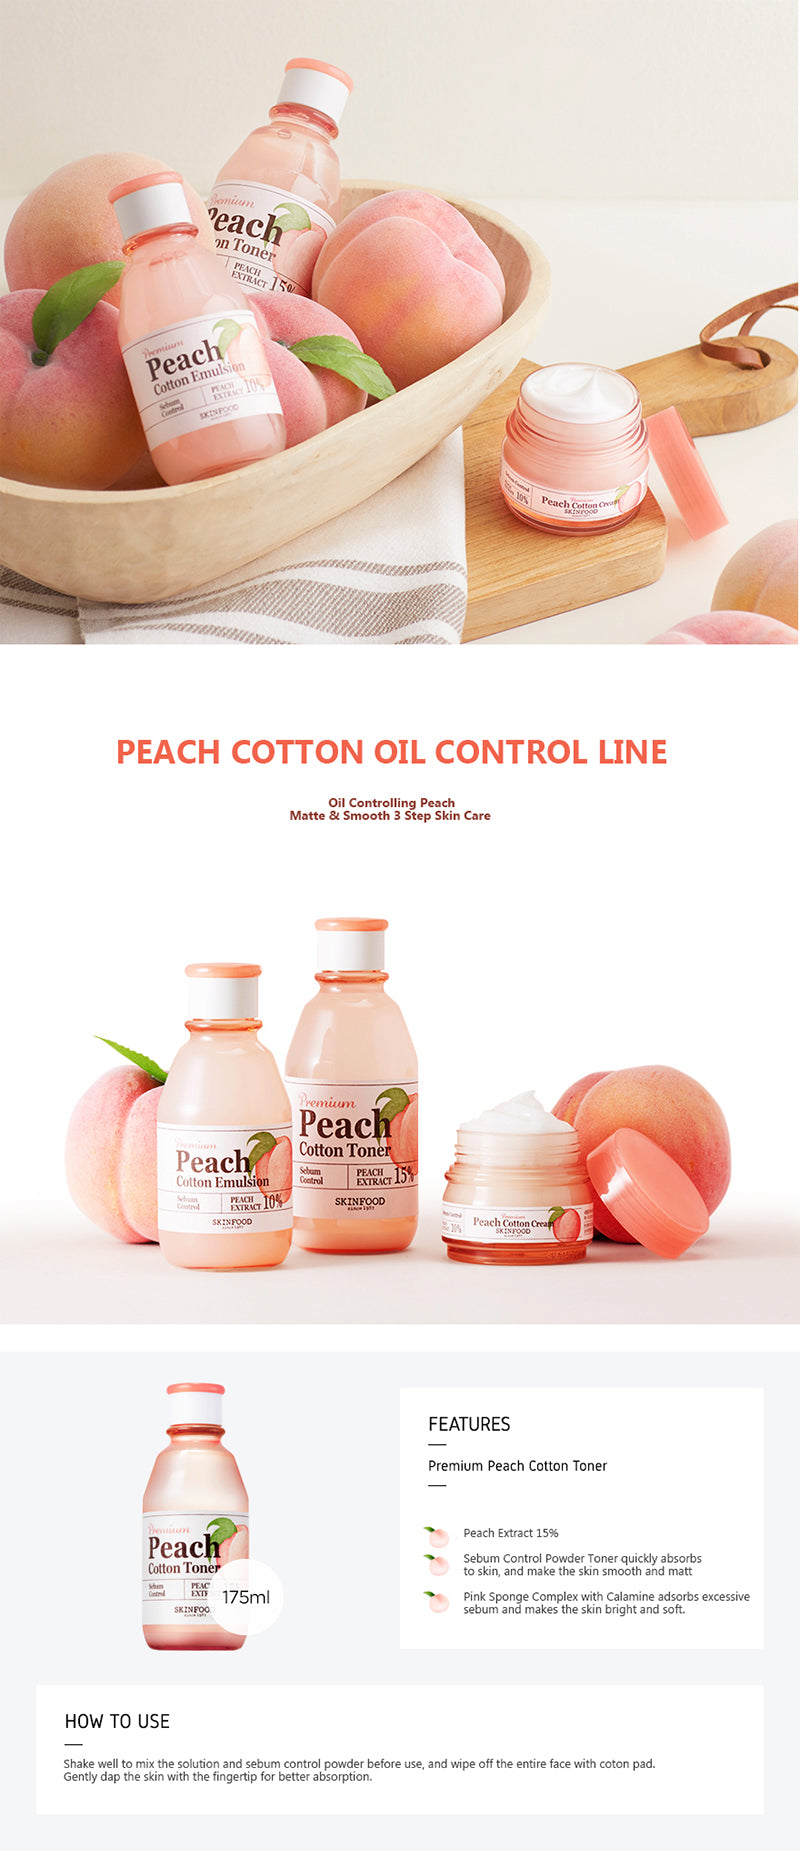 /skinfood_peach_cotton_toner_emulsion_cream_1